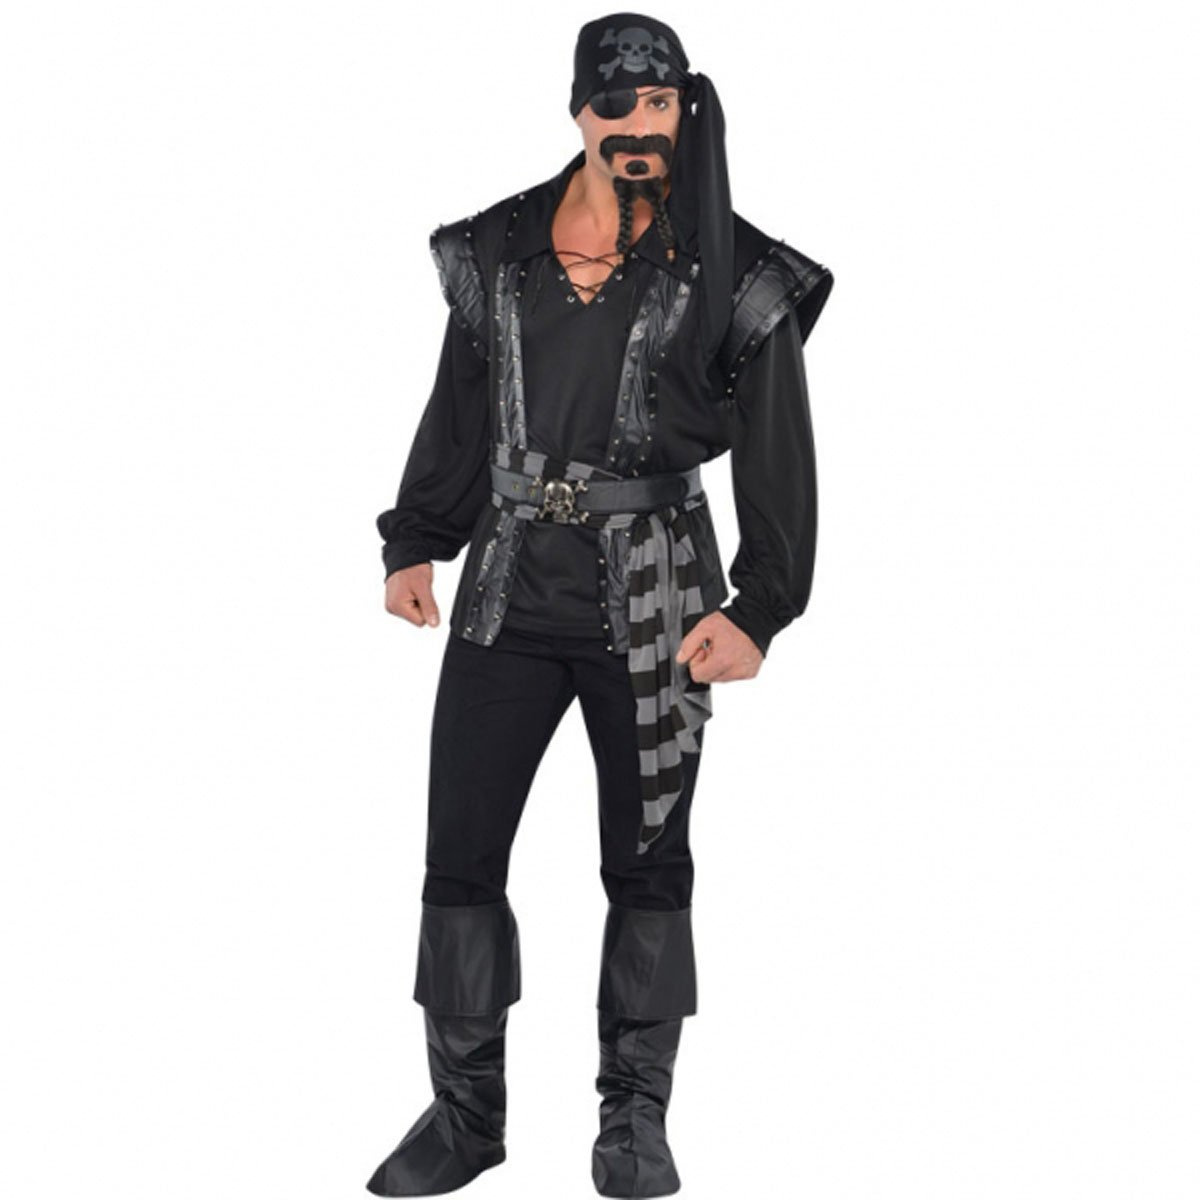 Adult Dark Sea Scoundrel Pirate Buccaneer Costume Set with All Black Doublet Style Pirate Vest, Attached Shirt, Faux Leather Belt, a Skull and Crossbones Print Bandana, and Black And Gray Striped Waist Sash - DeluxeAdultCostumes.com